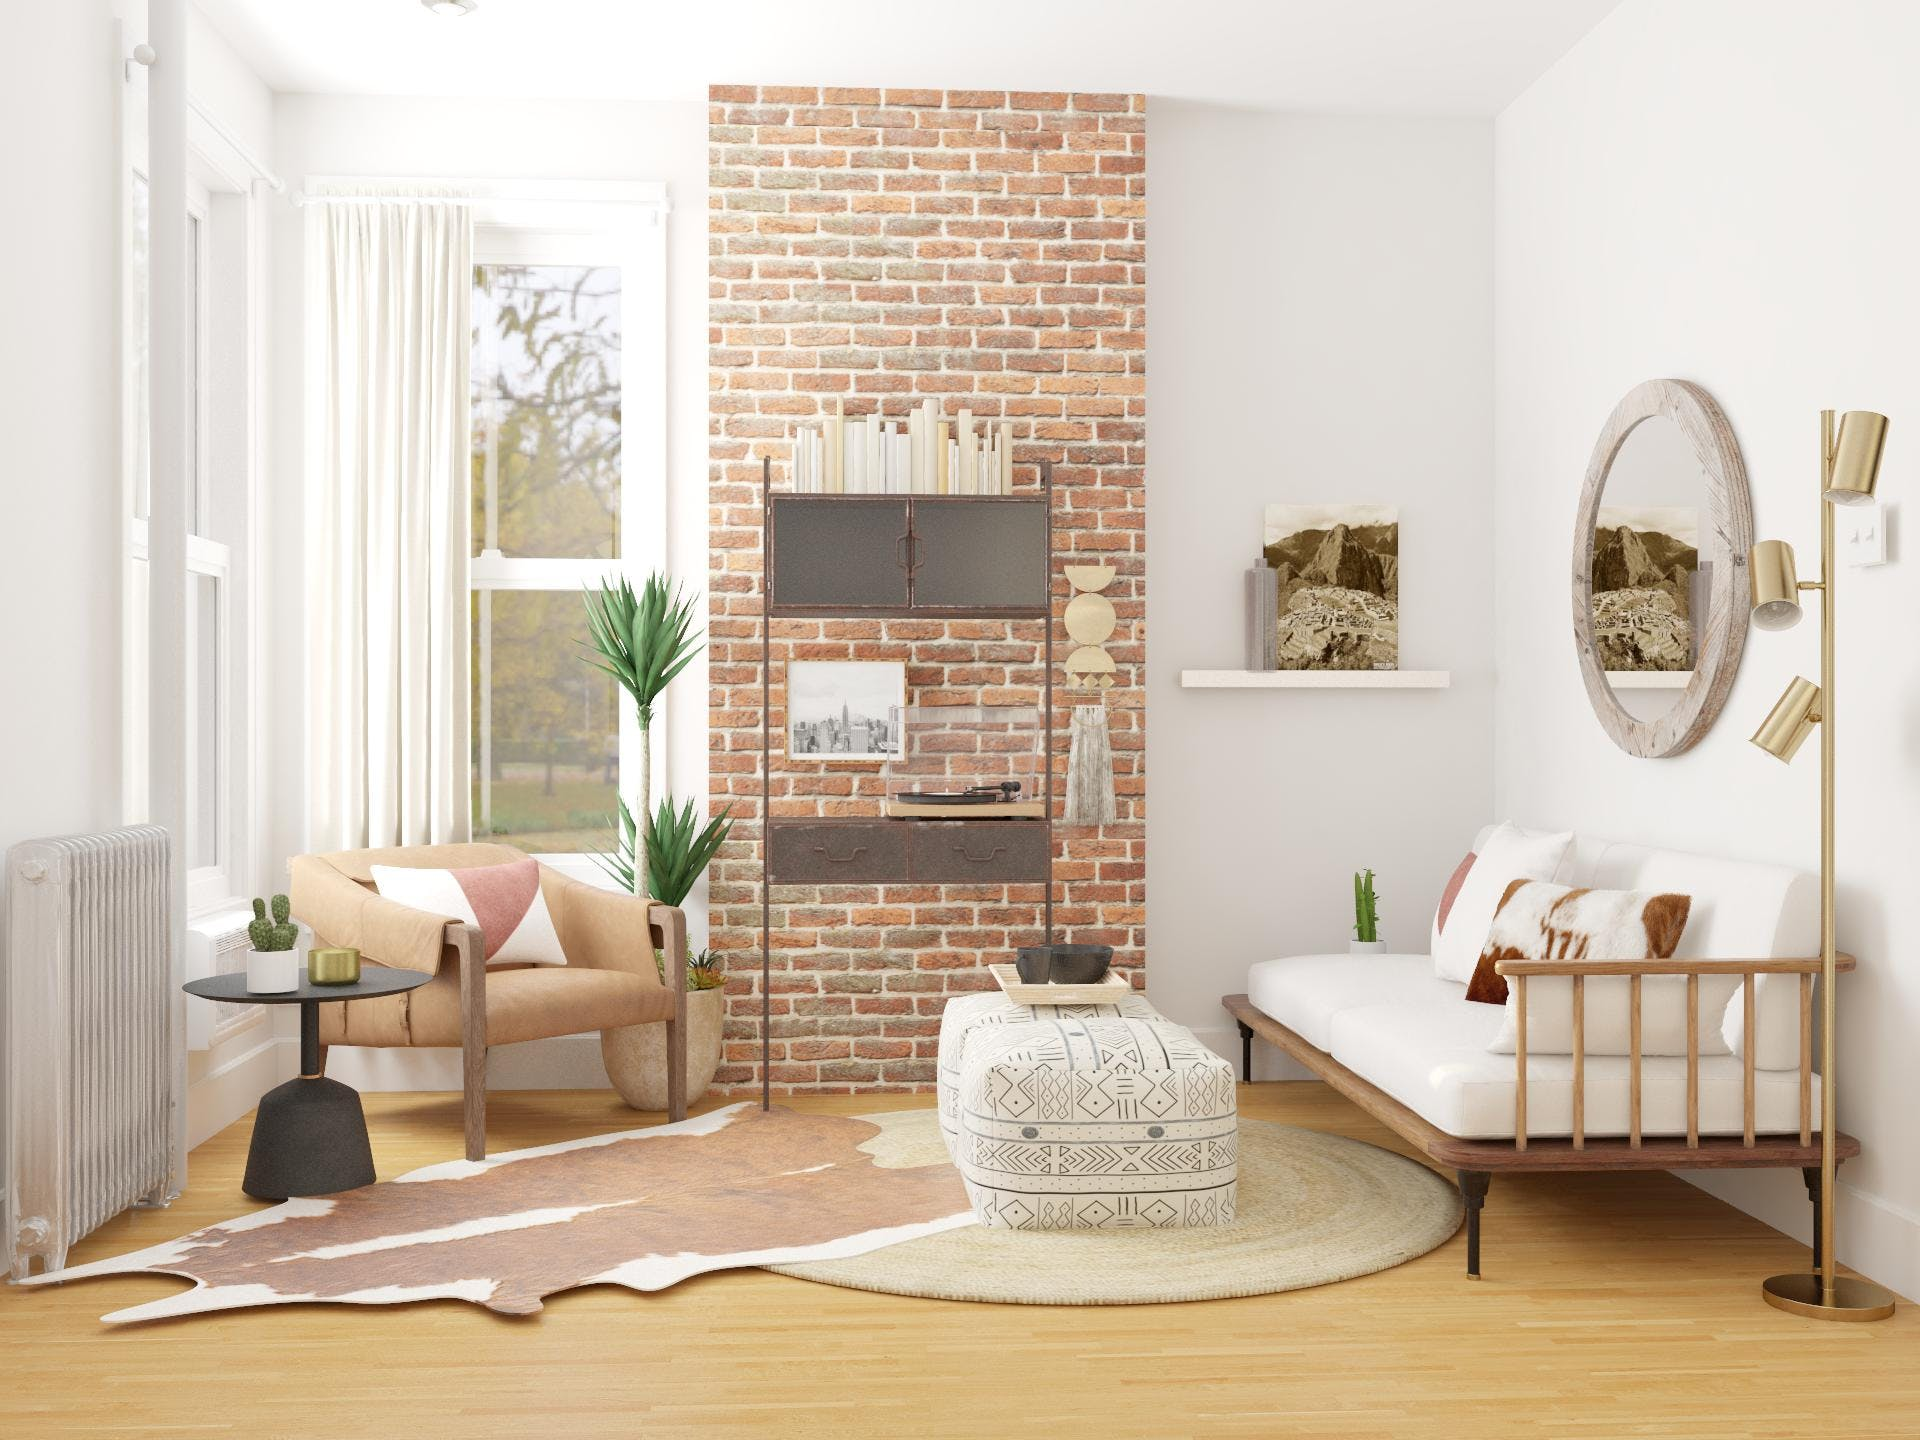 Eclectic Living Room With Conversational Seating